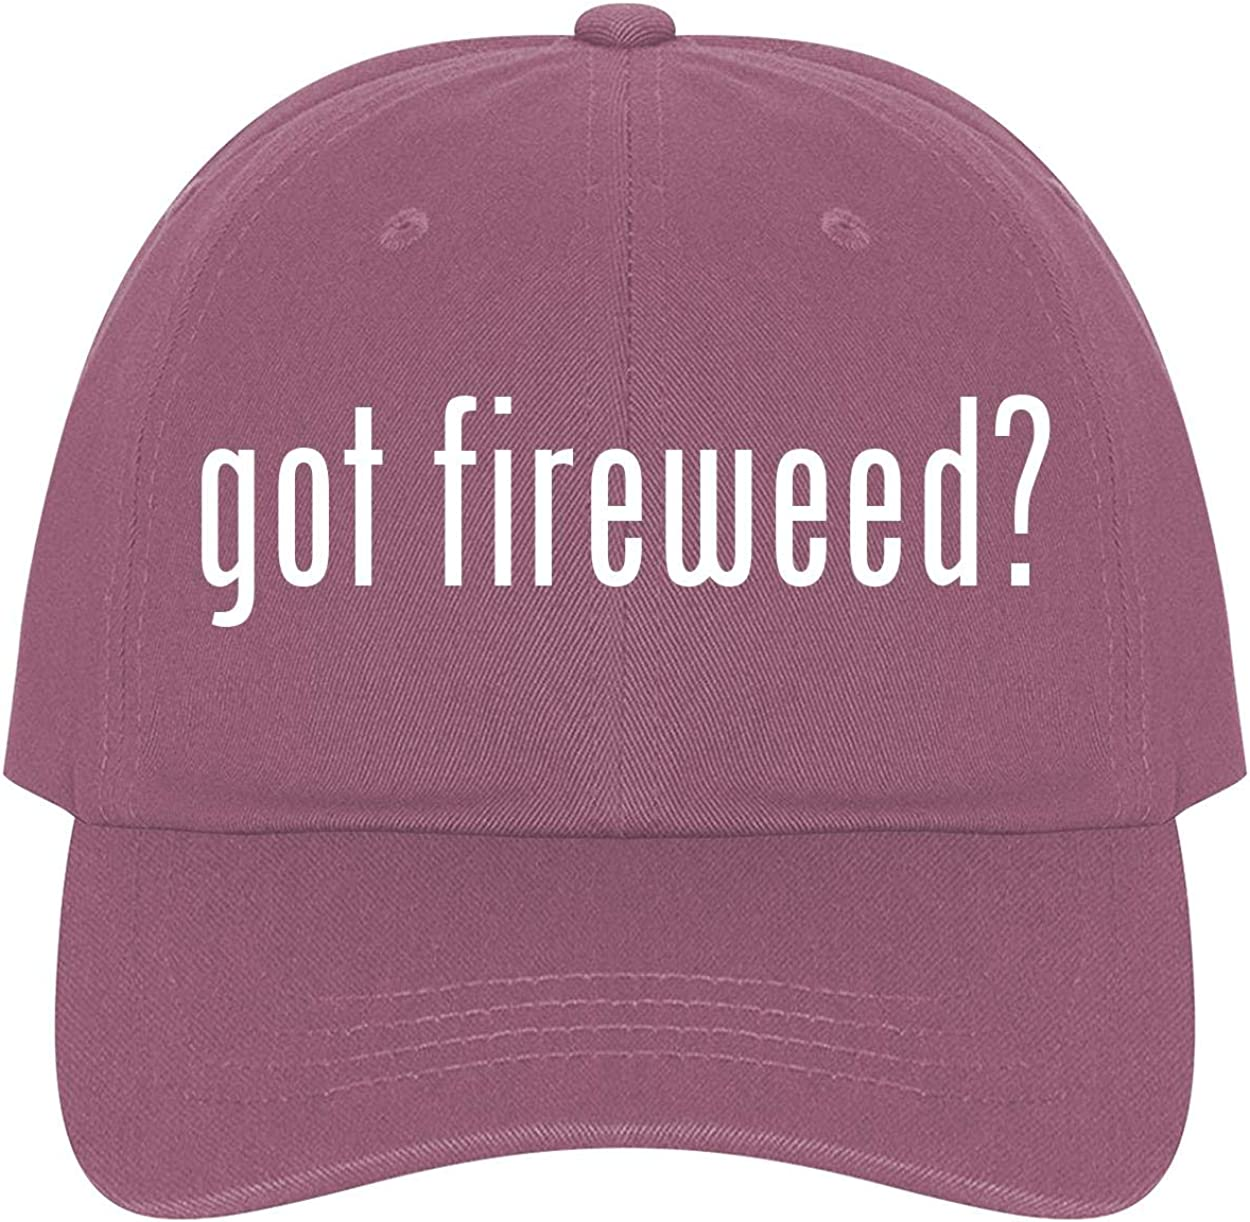 A Nice Comfortable Adjustable Dad Hat Cap The Town Butler got Fireweed?